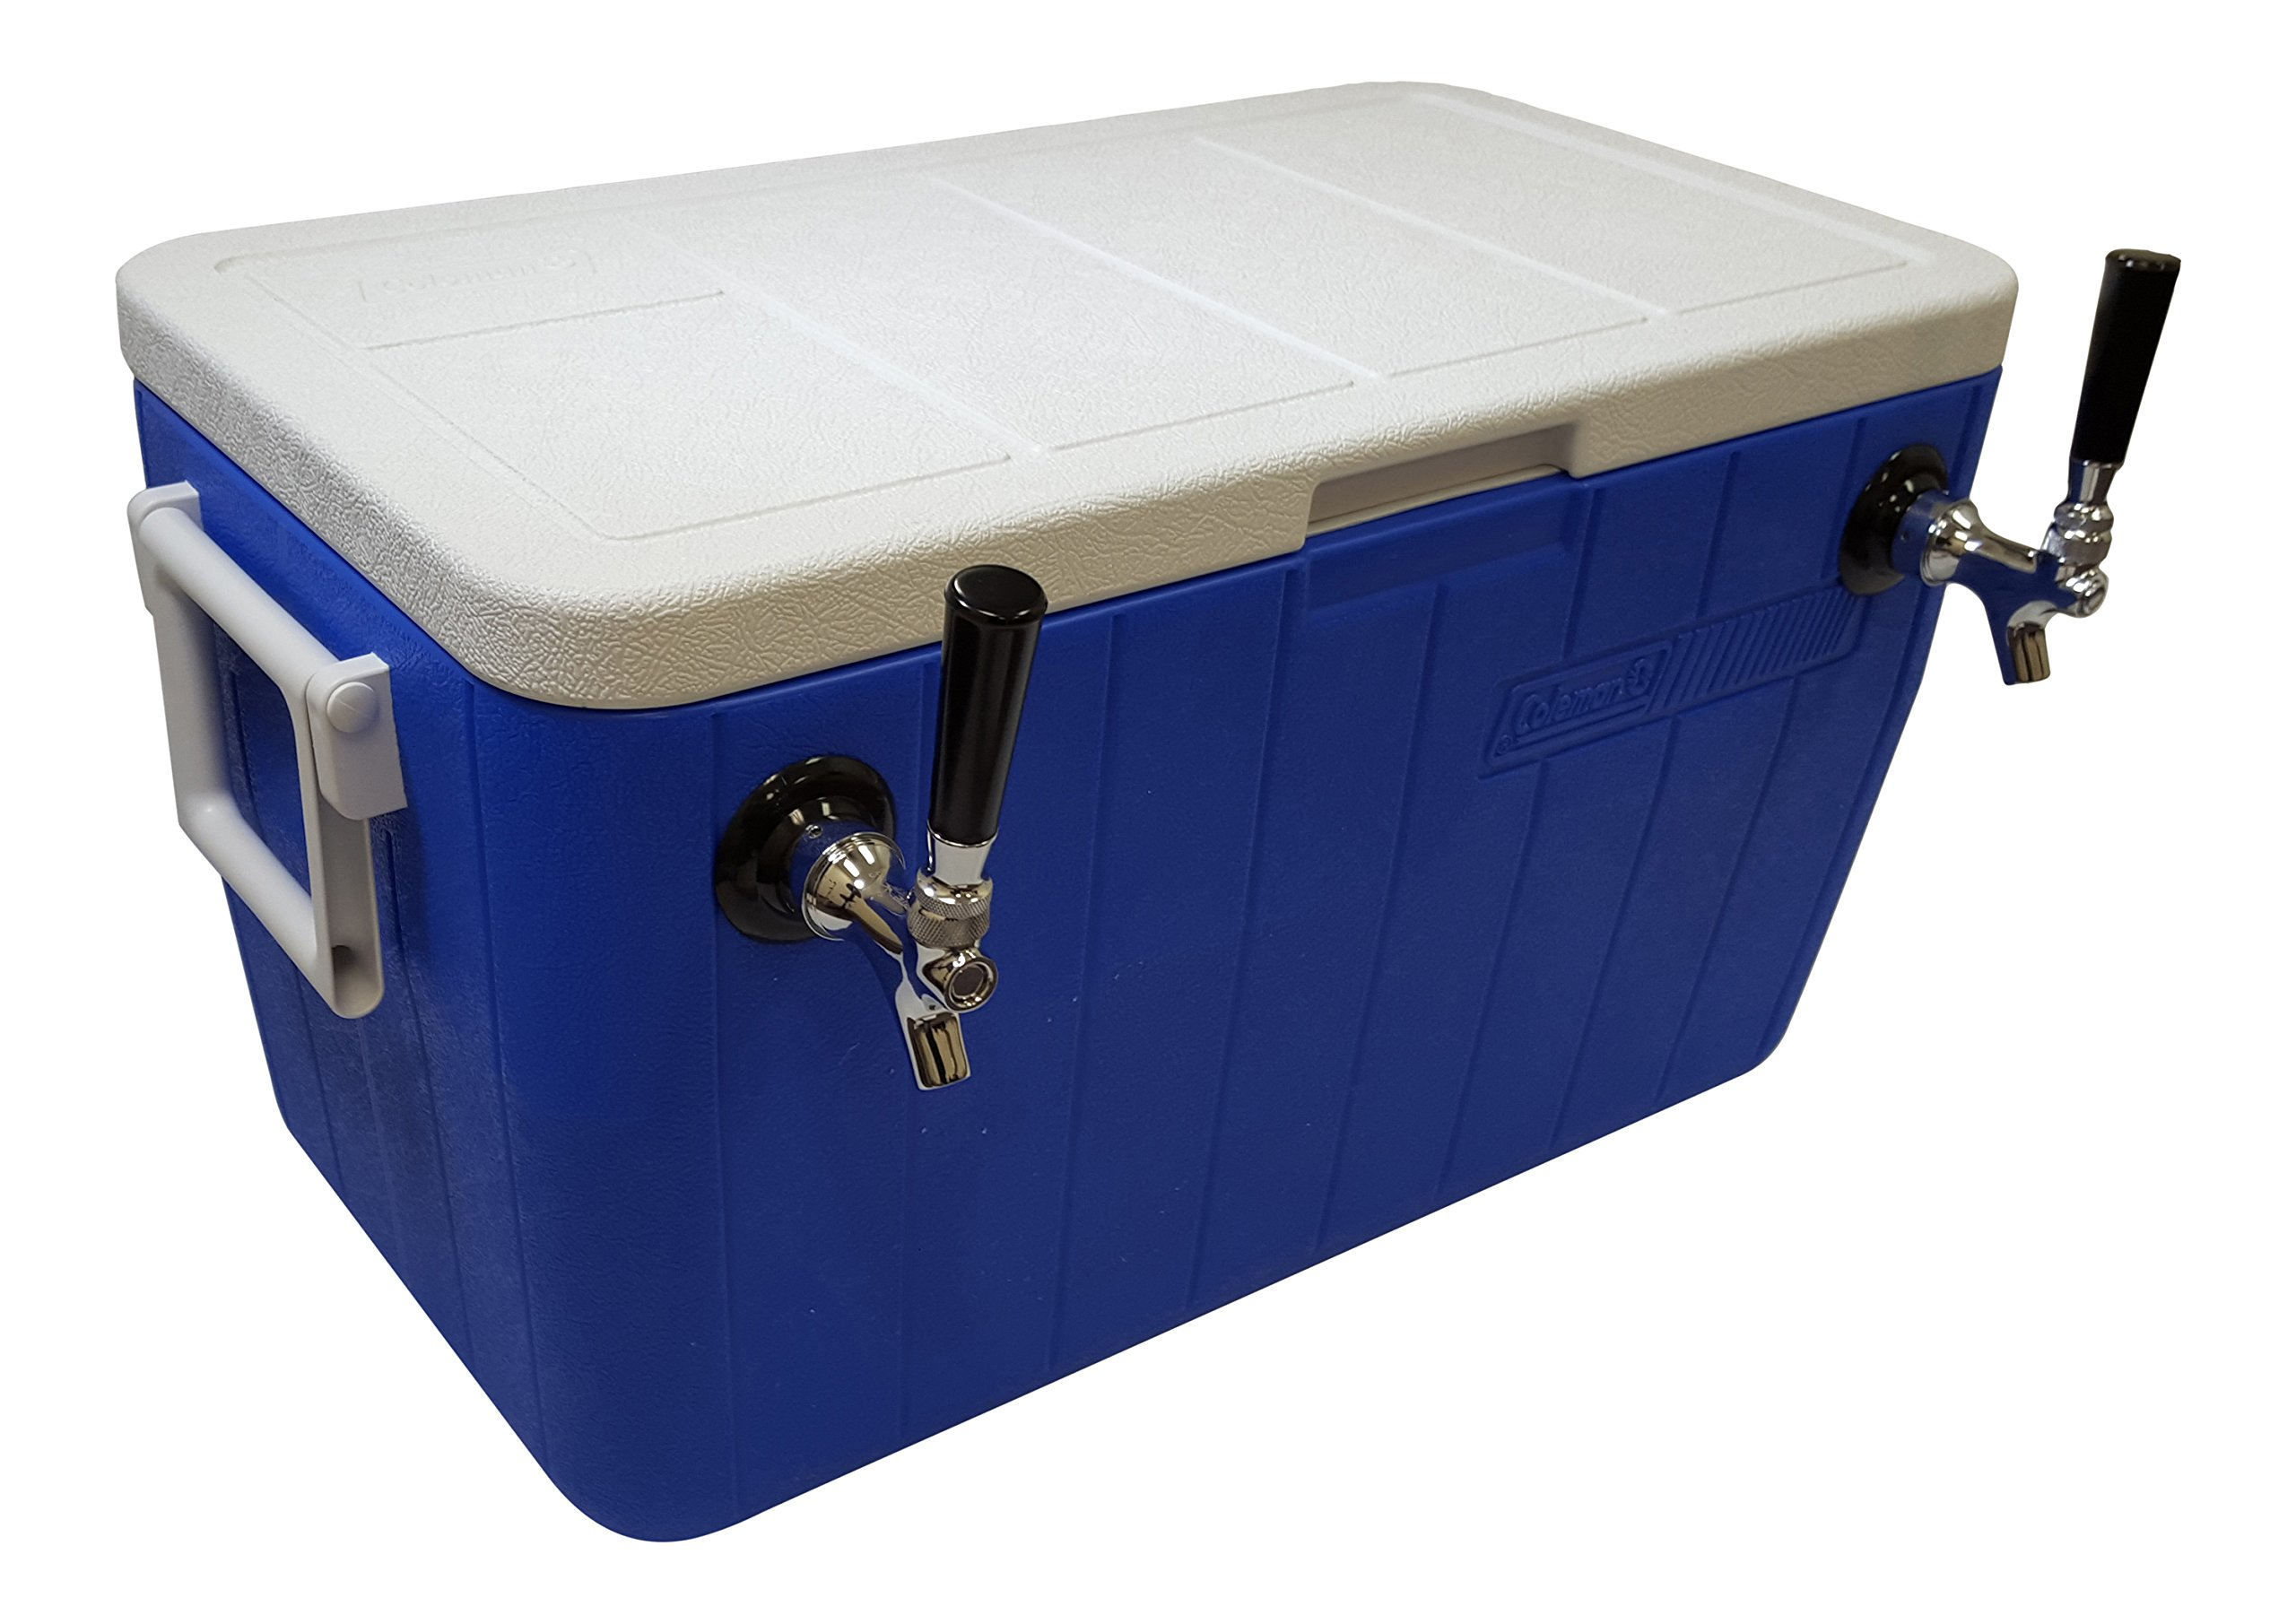 NY Brew Supply 50' Stainless Steel Coils Jockey Box Cooler with Double Faucet, 48 quart, Blue